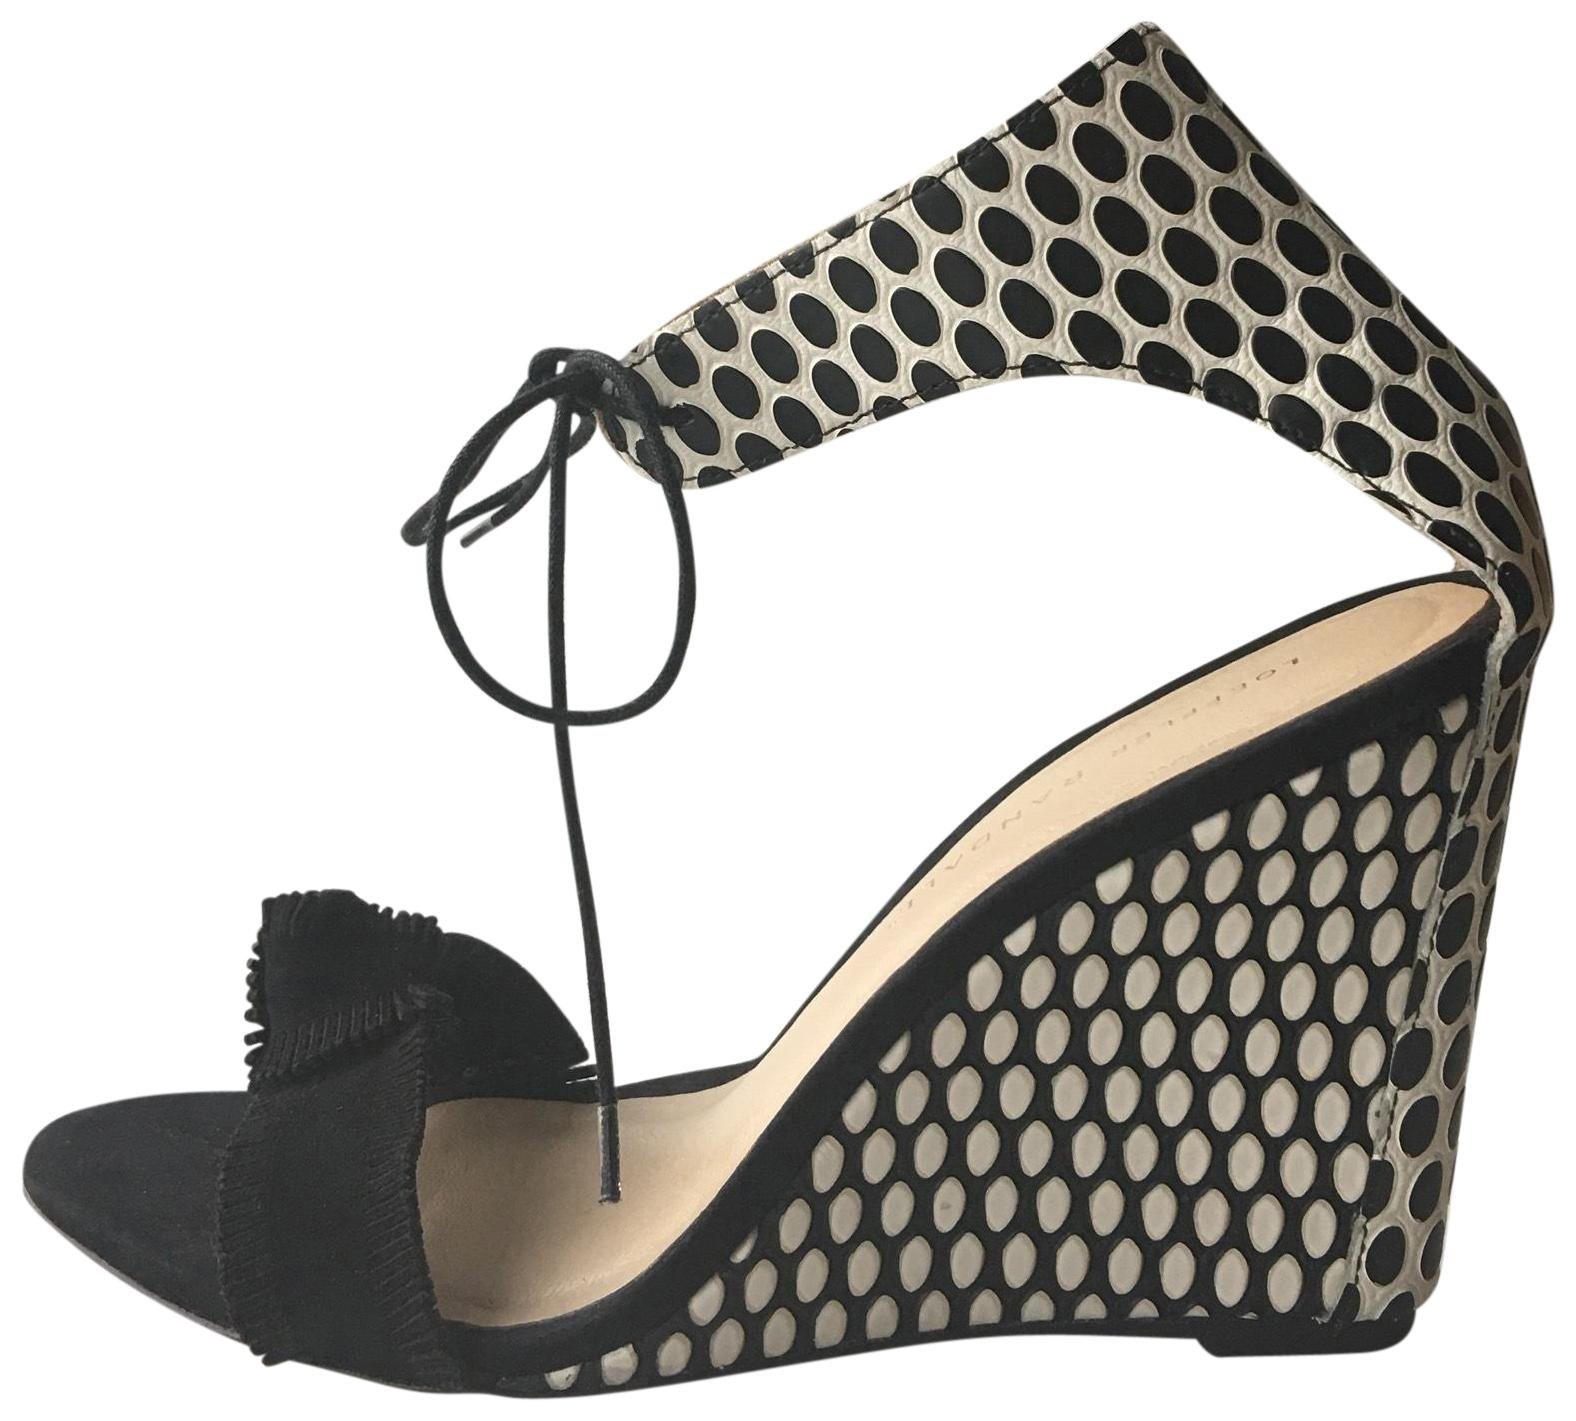 Loeffler Randall Black/White Suede and Leather Polka Dot Tie Up 8.5 Ankle Wedges Size US 8.5 Up Regular (M, B) 44e815